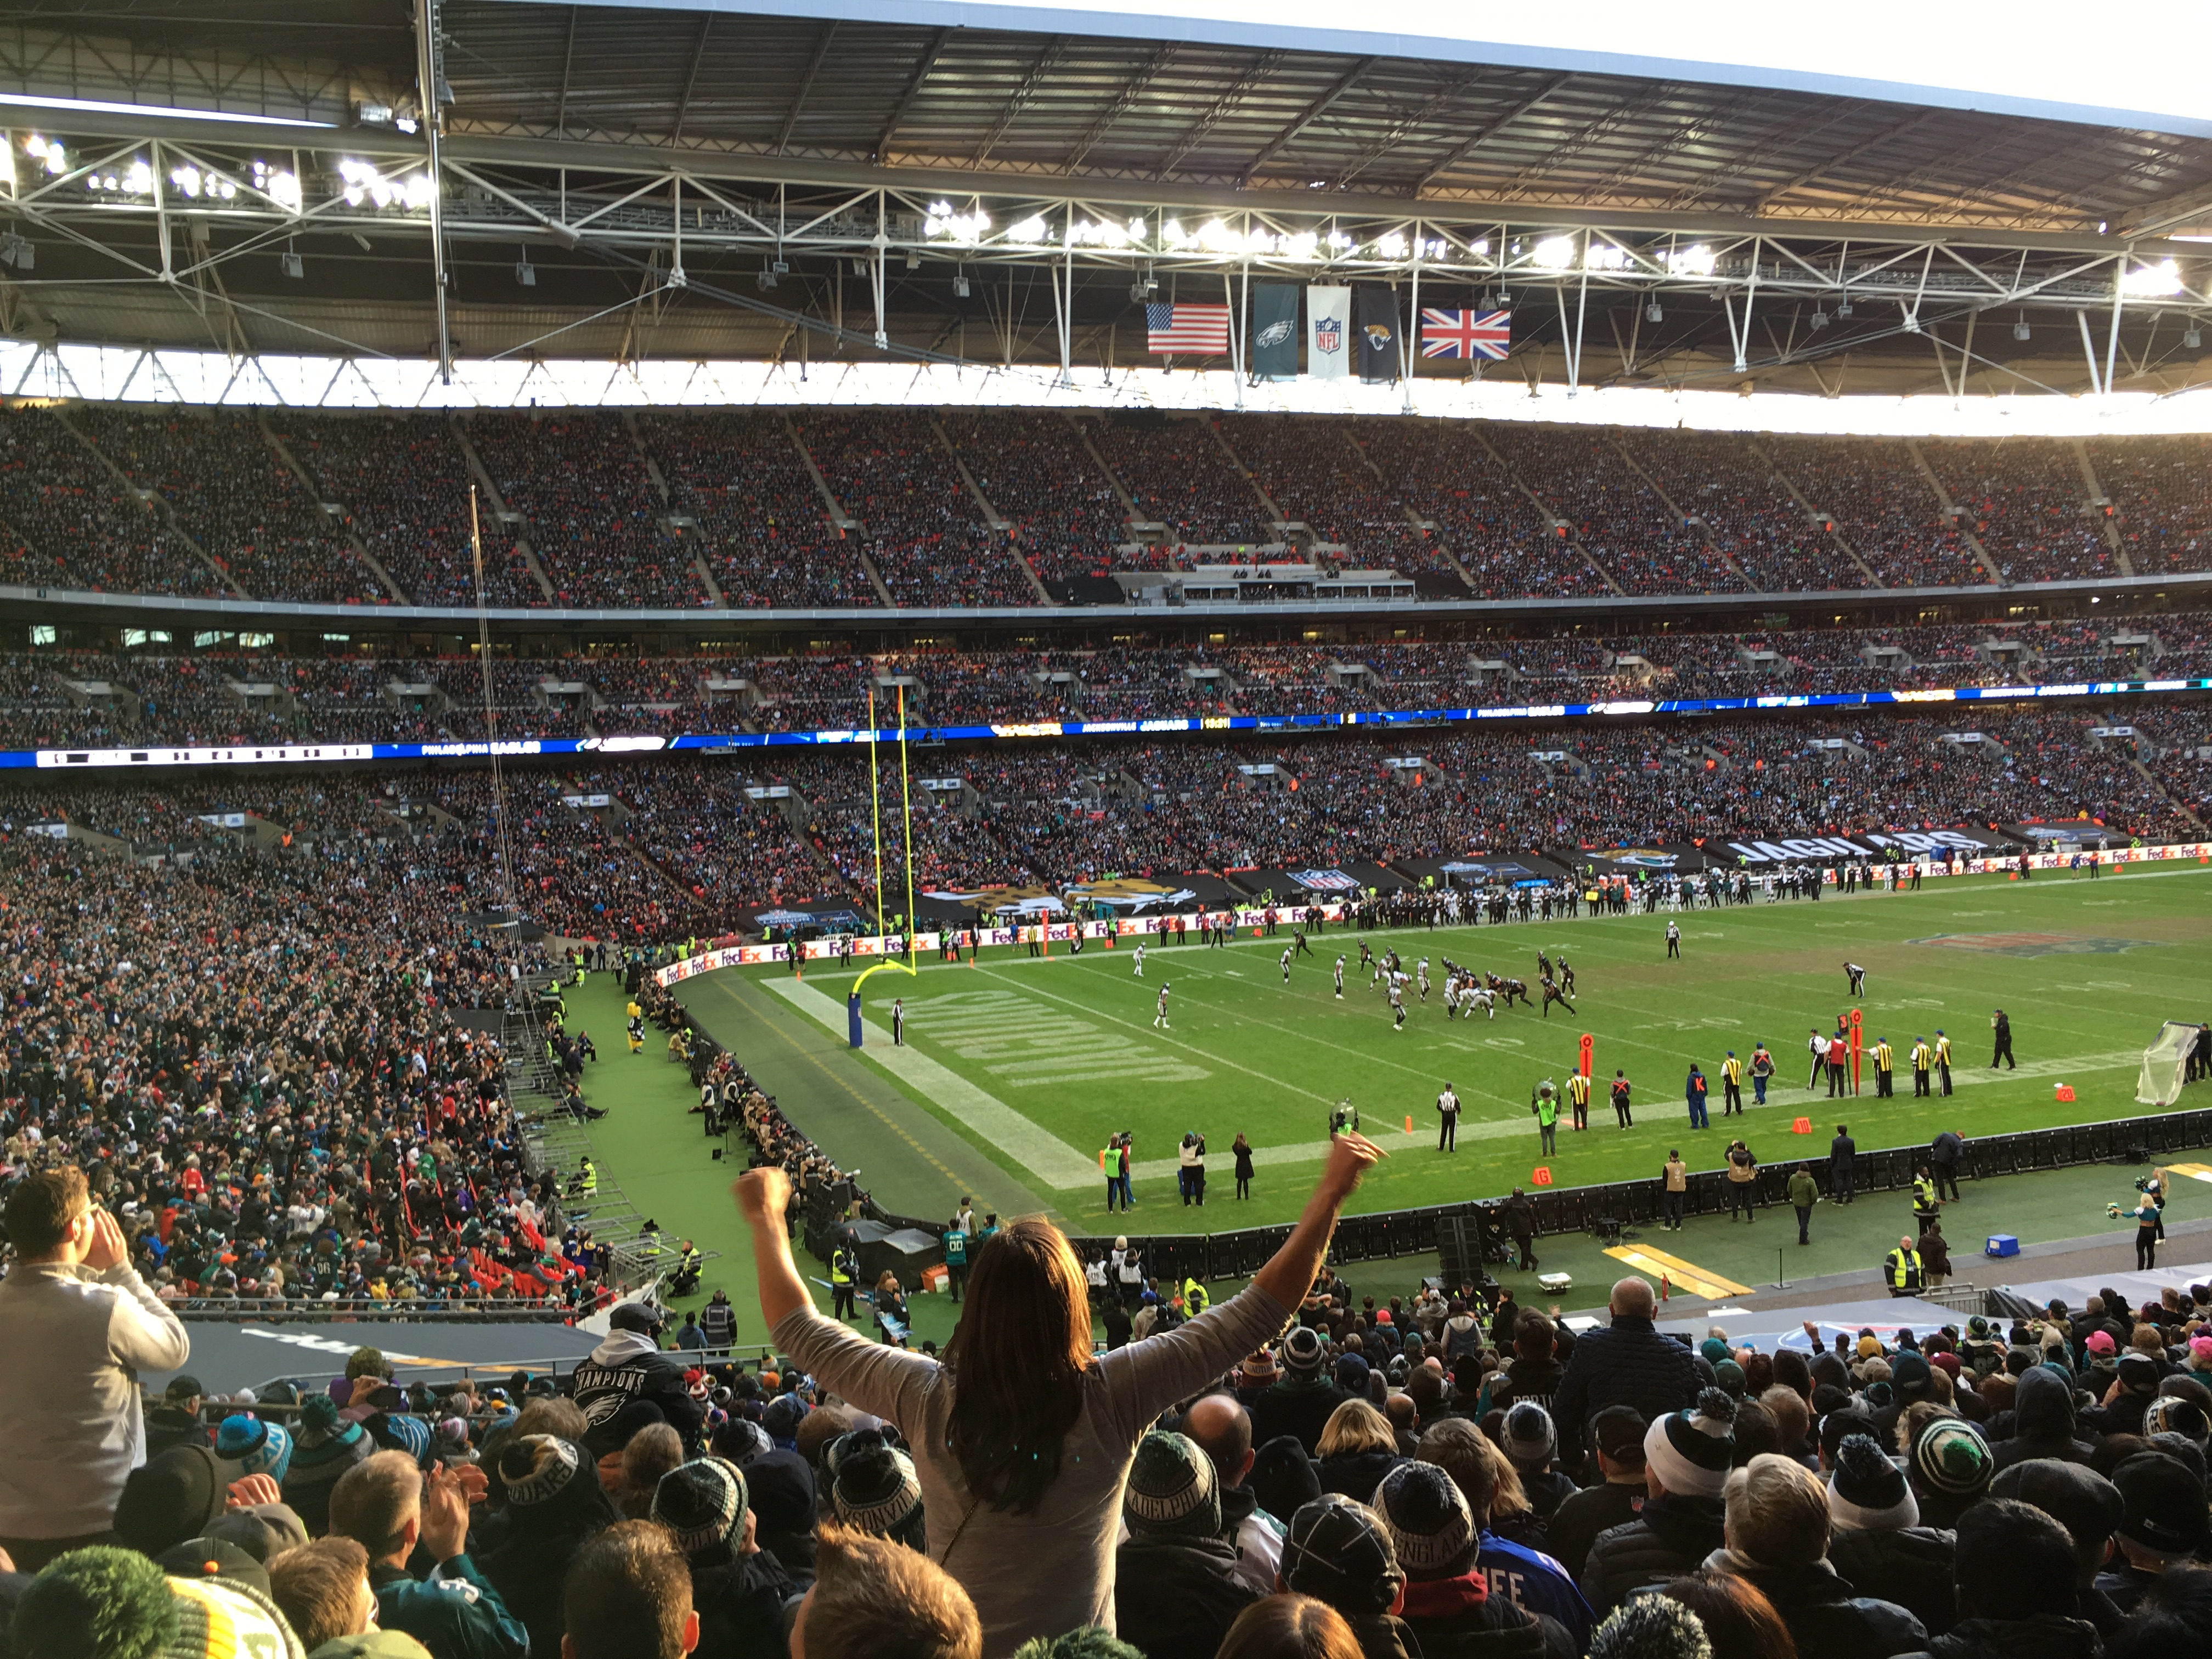 Watching an NFL game in London